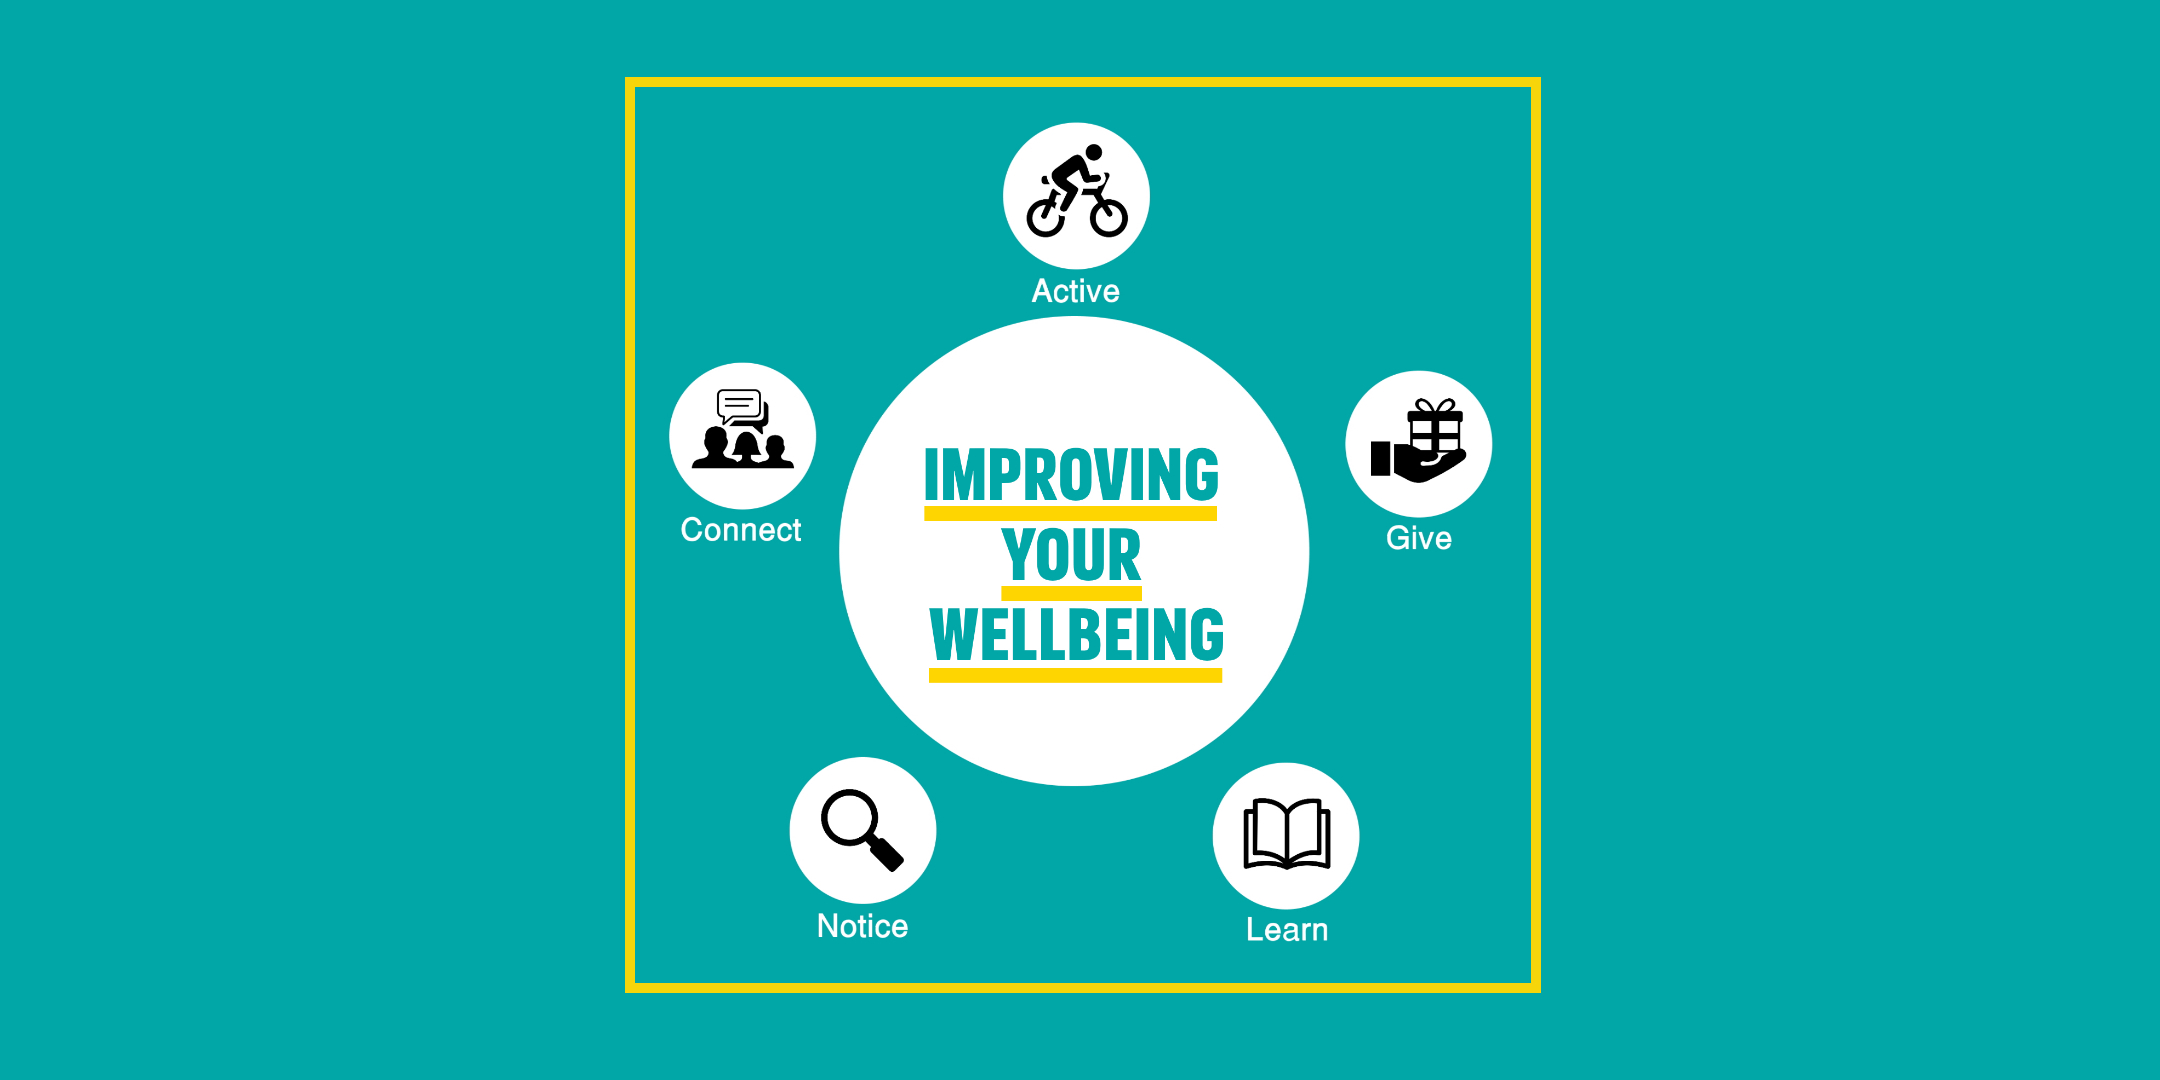 Improving Your Wellbeing Eventbrite